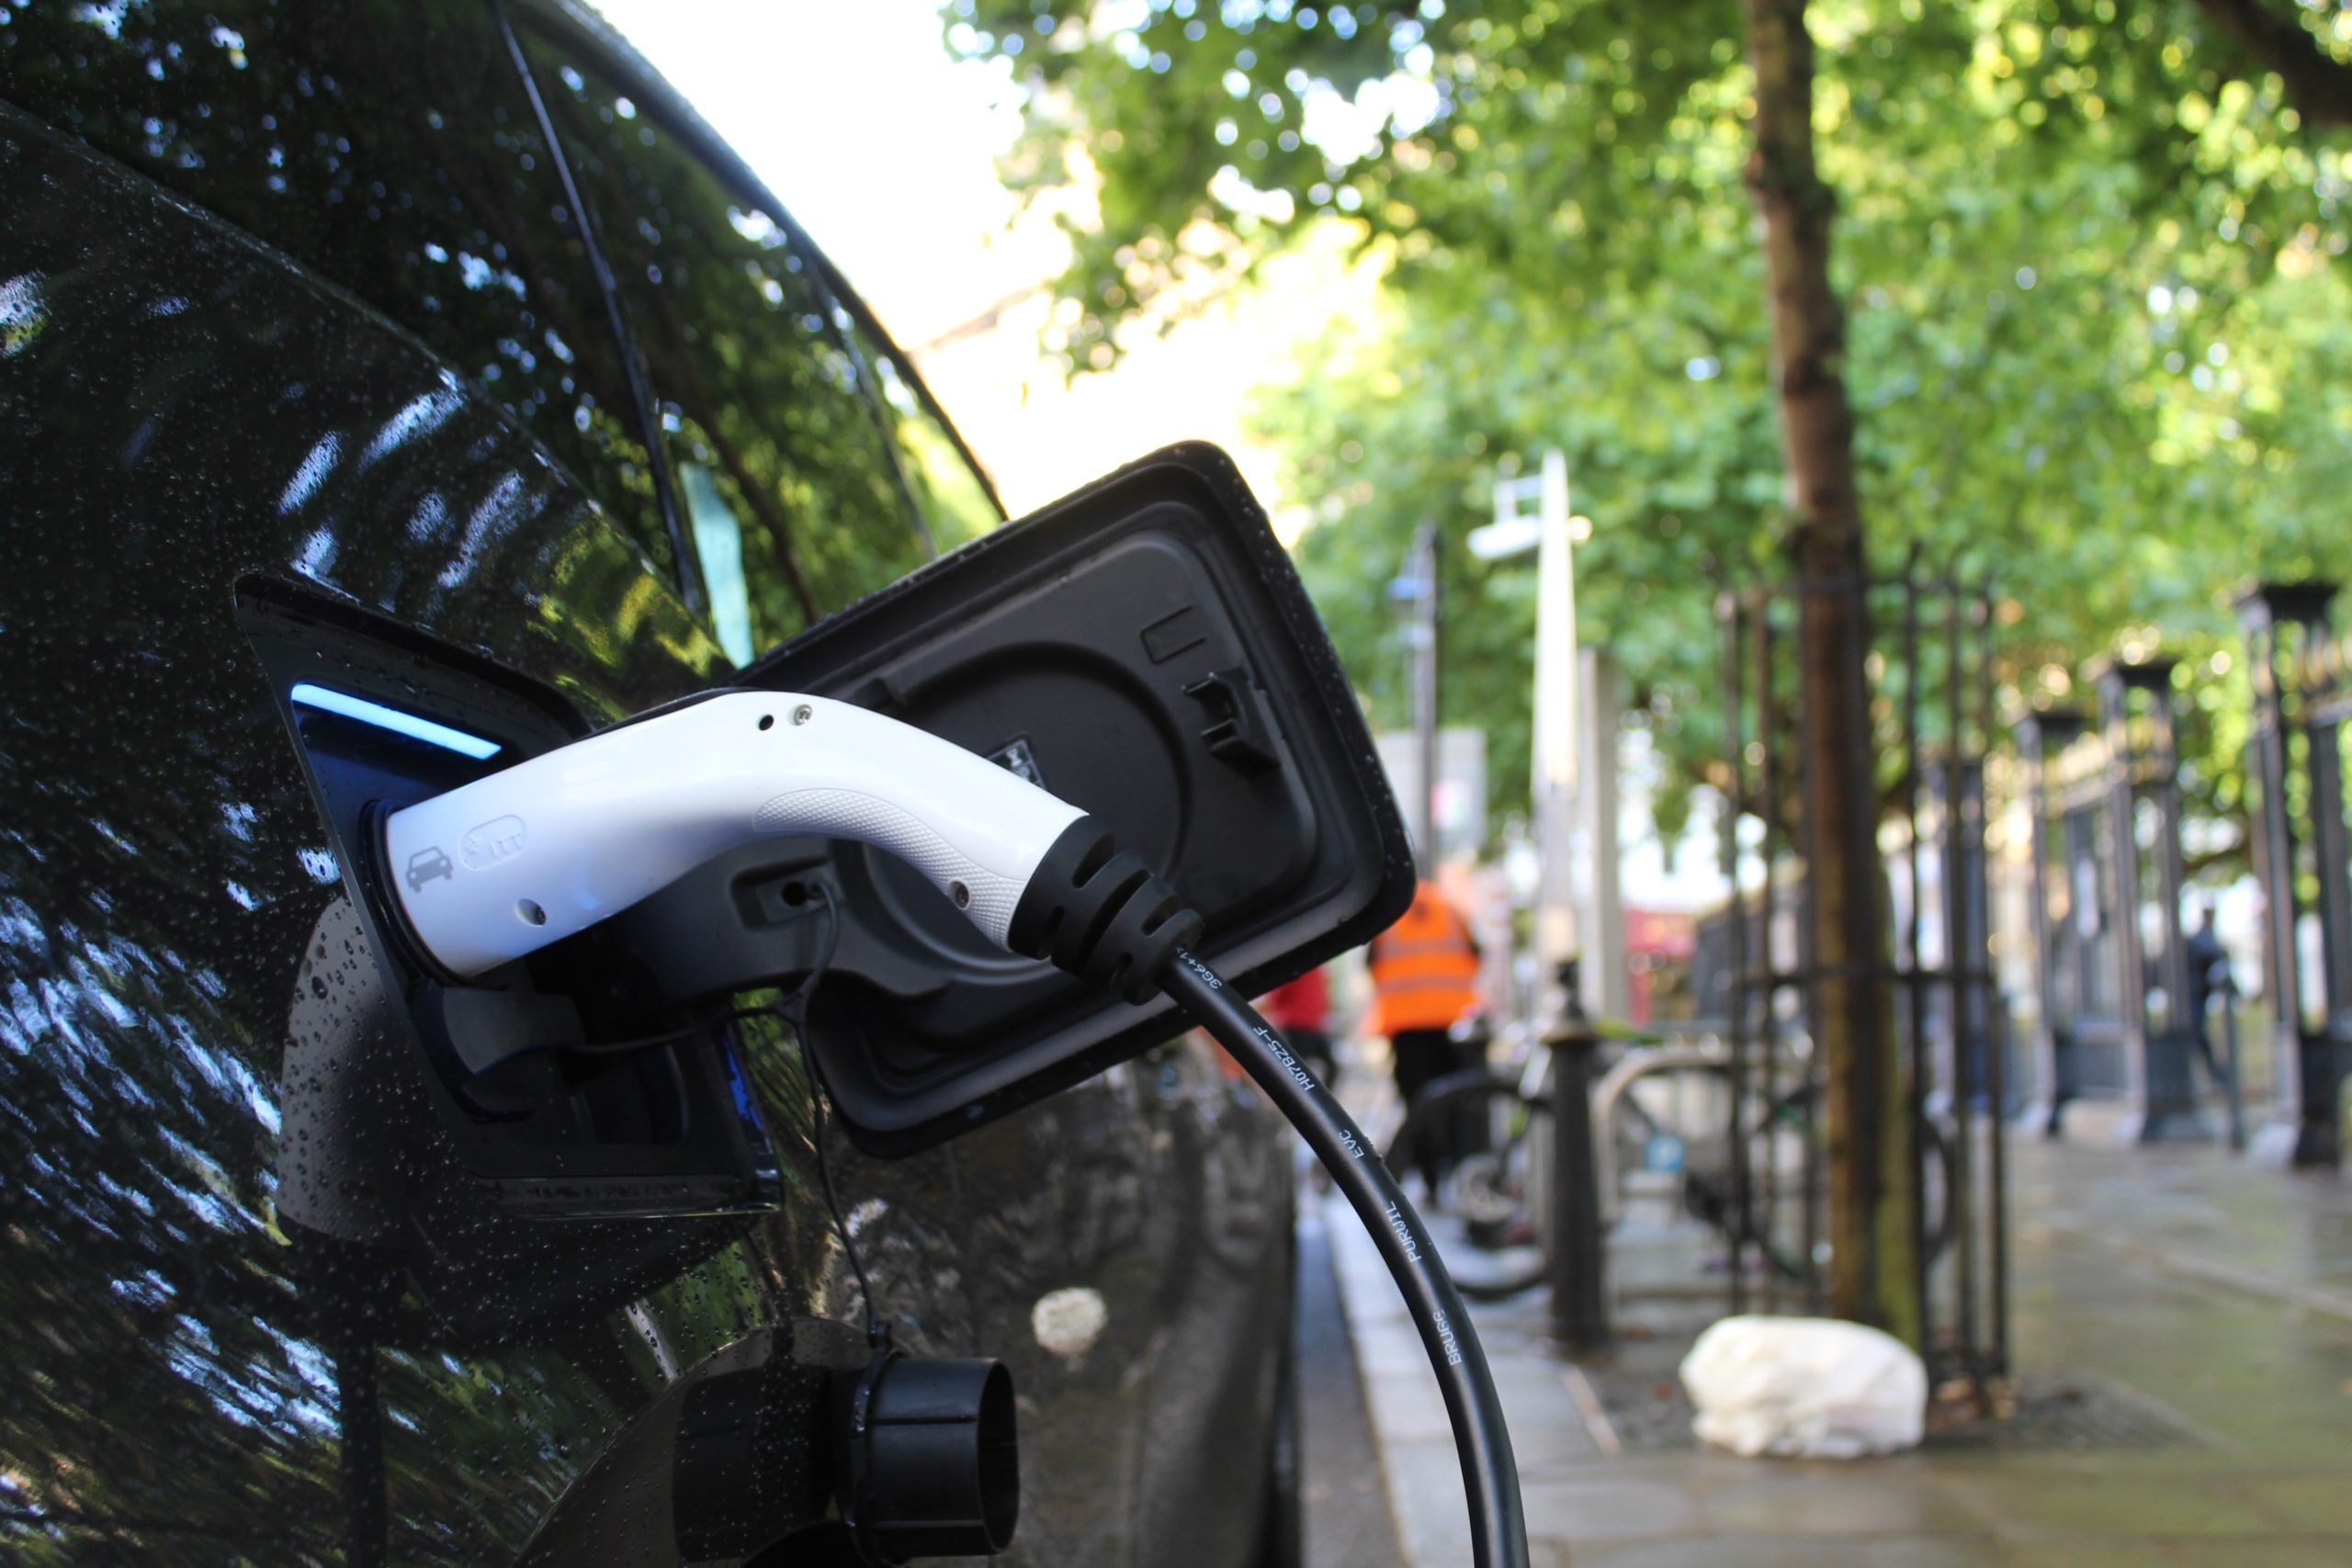 Green Your Ride: Should You Buy An Electric Vehicle?